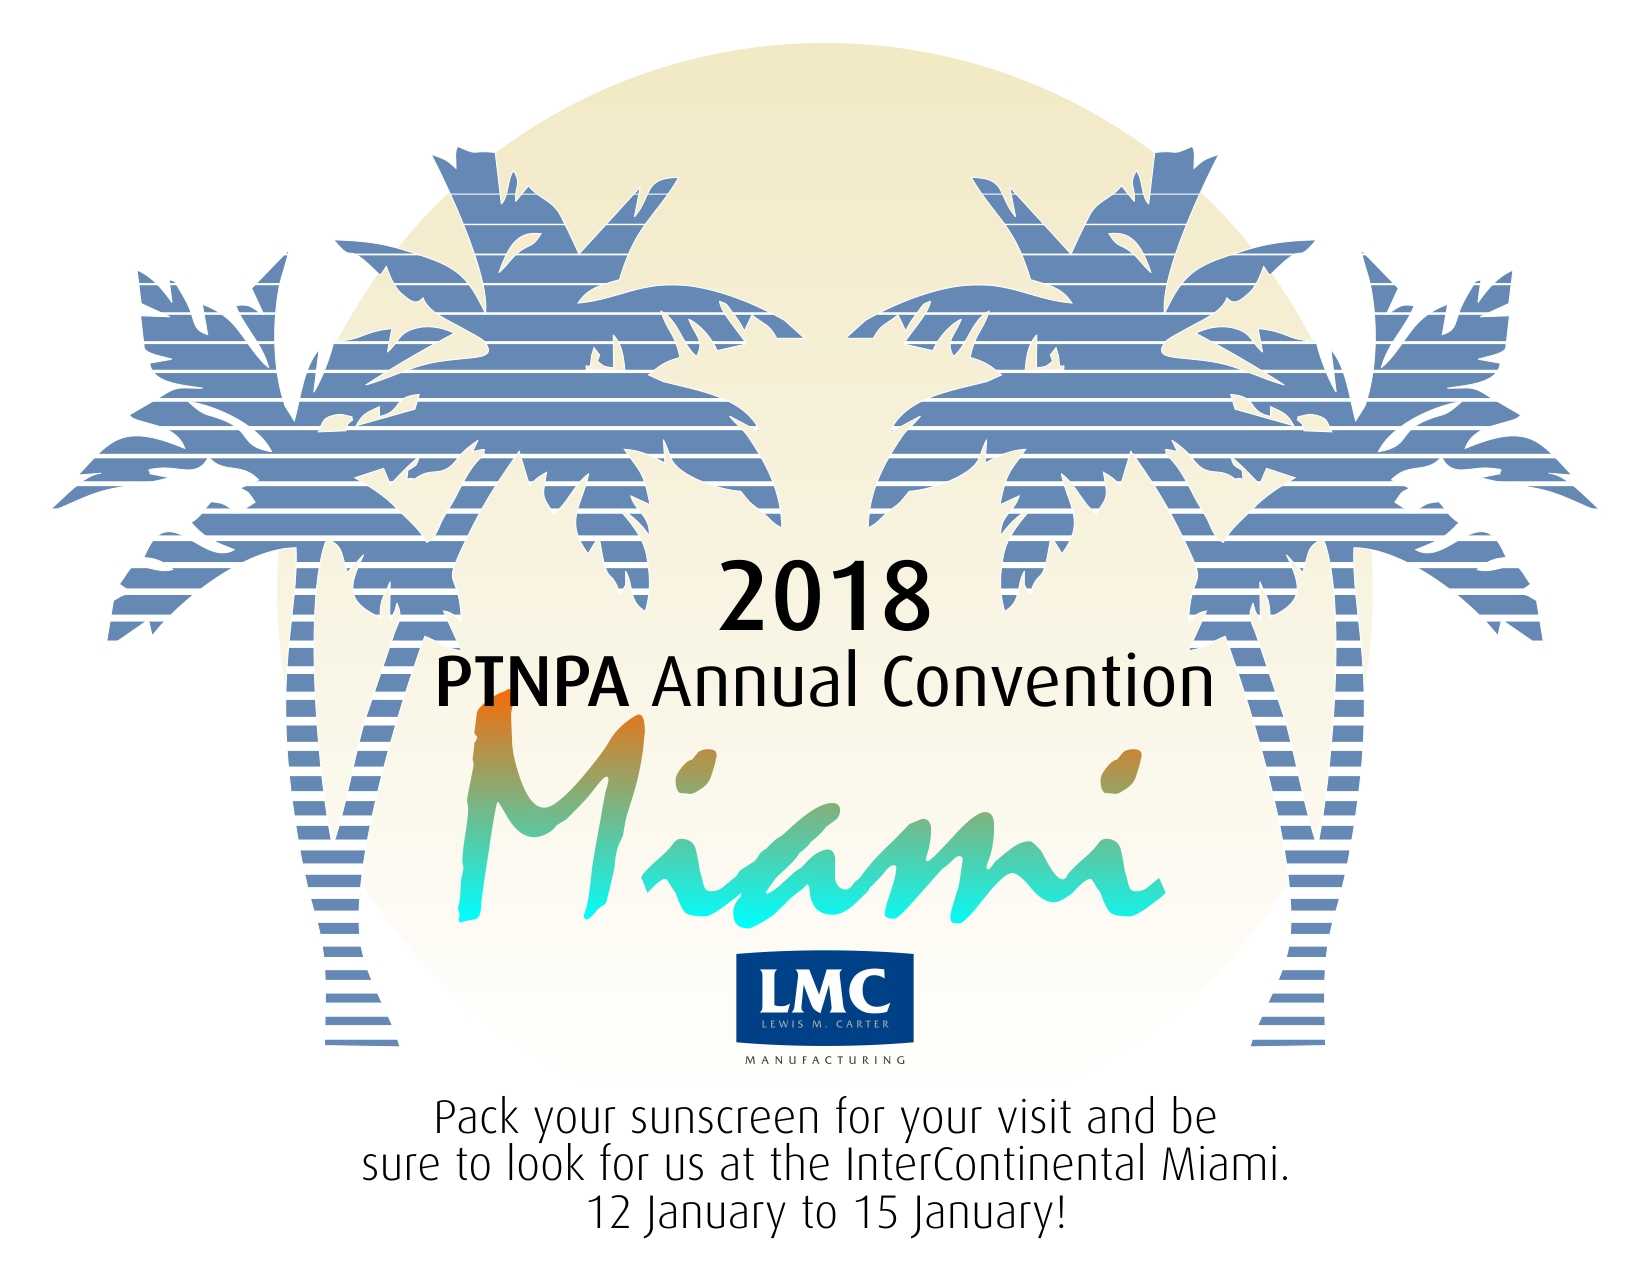 LMC to Attend PTNPA Annual Convention